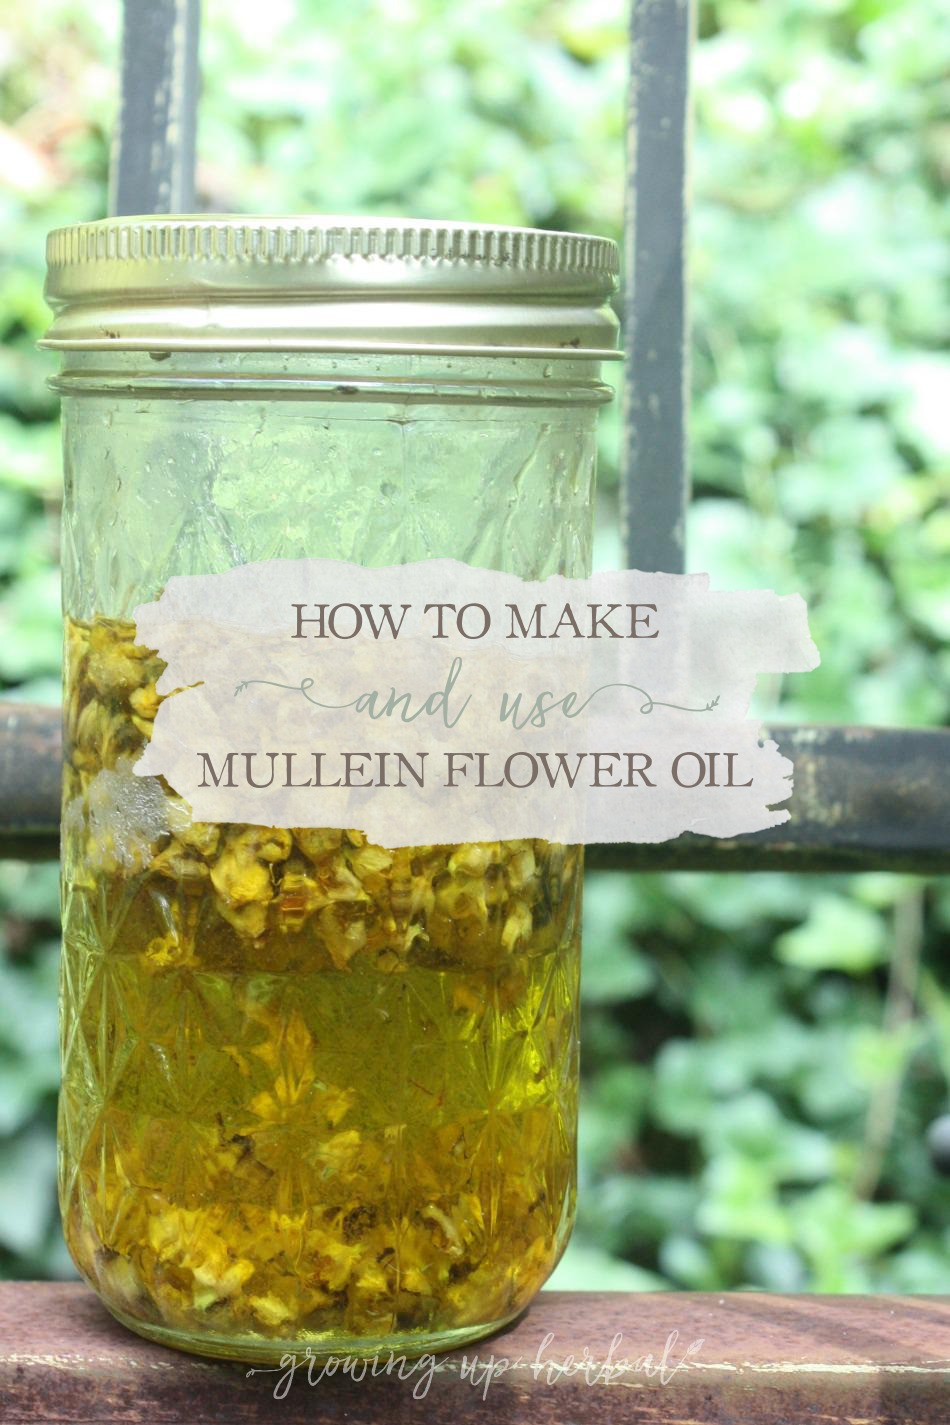 How To Make And Use Mullein Flower Oil | Growing Up Herbal | Mullein flower oil is a great oil to keep on hand as it can be used in many ways for your family's wellness.